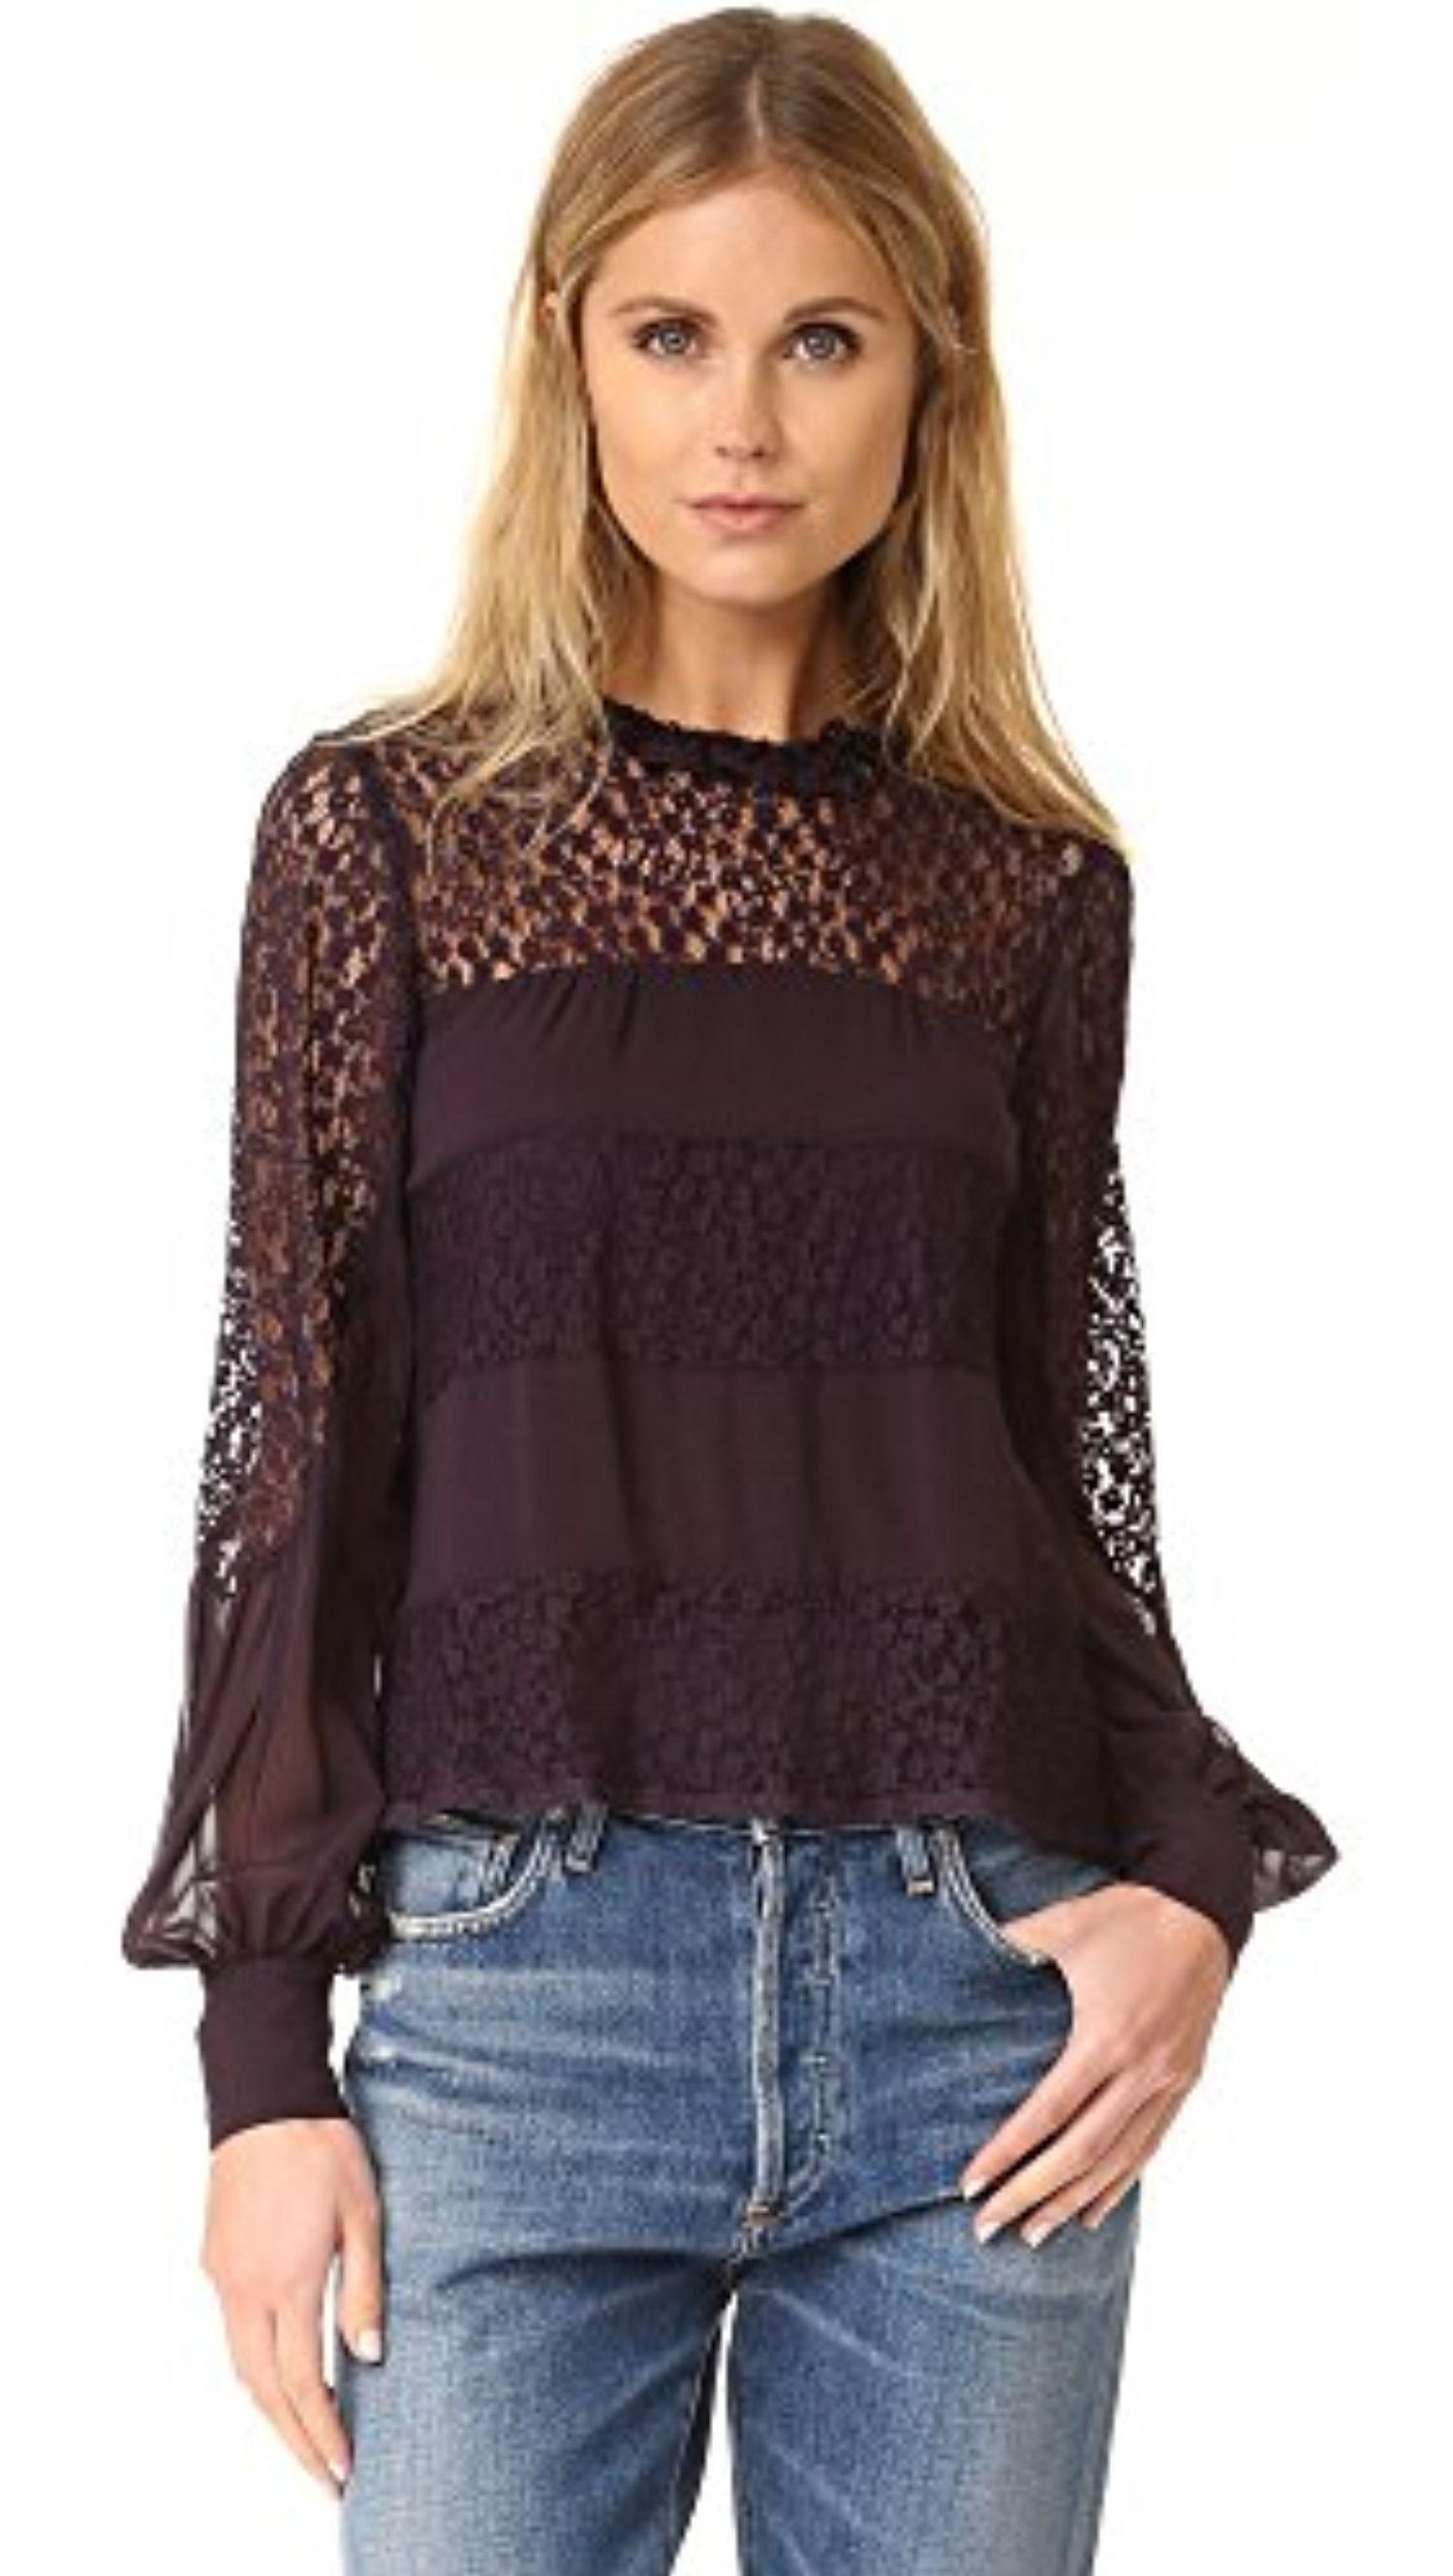 5a5ded4278427 Nanette Lepore Women s Jezebel Blouse - Brought to you by Avarsha ...